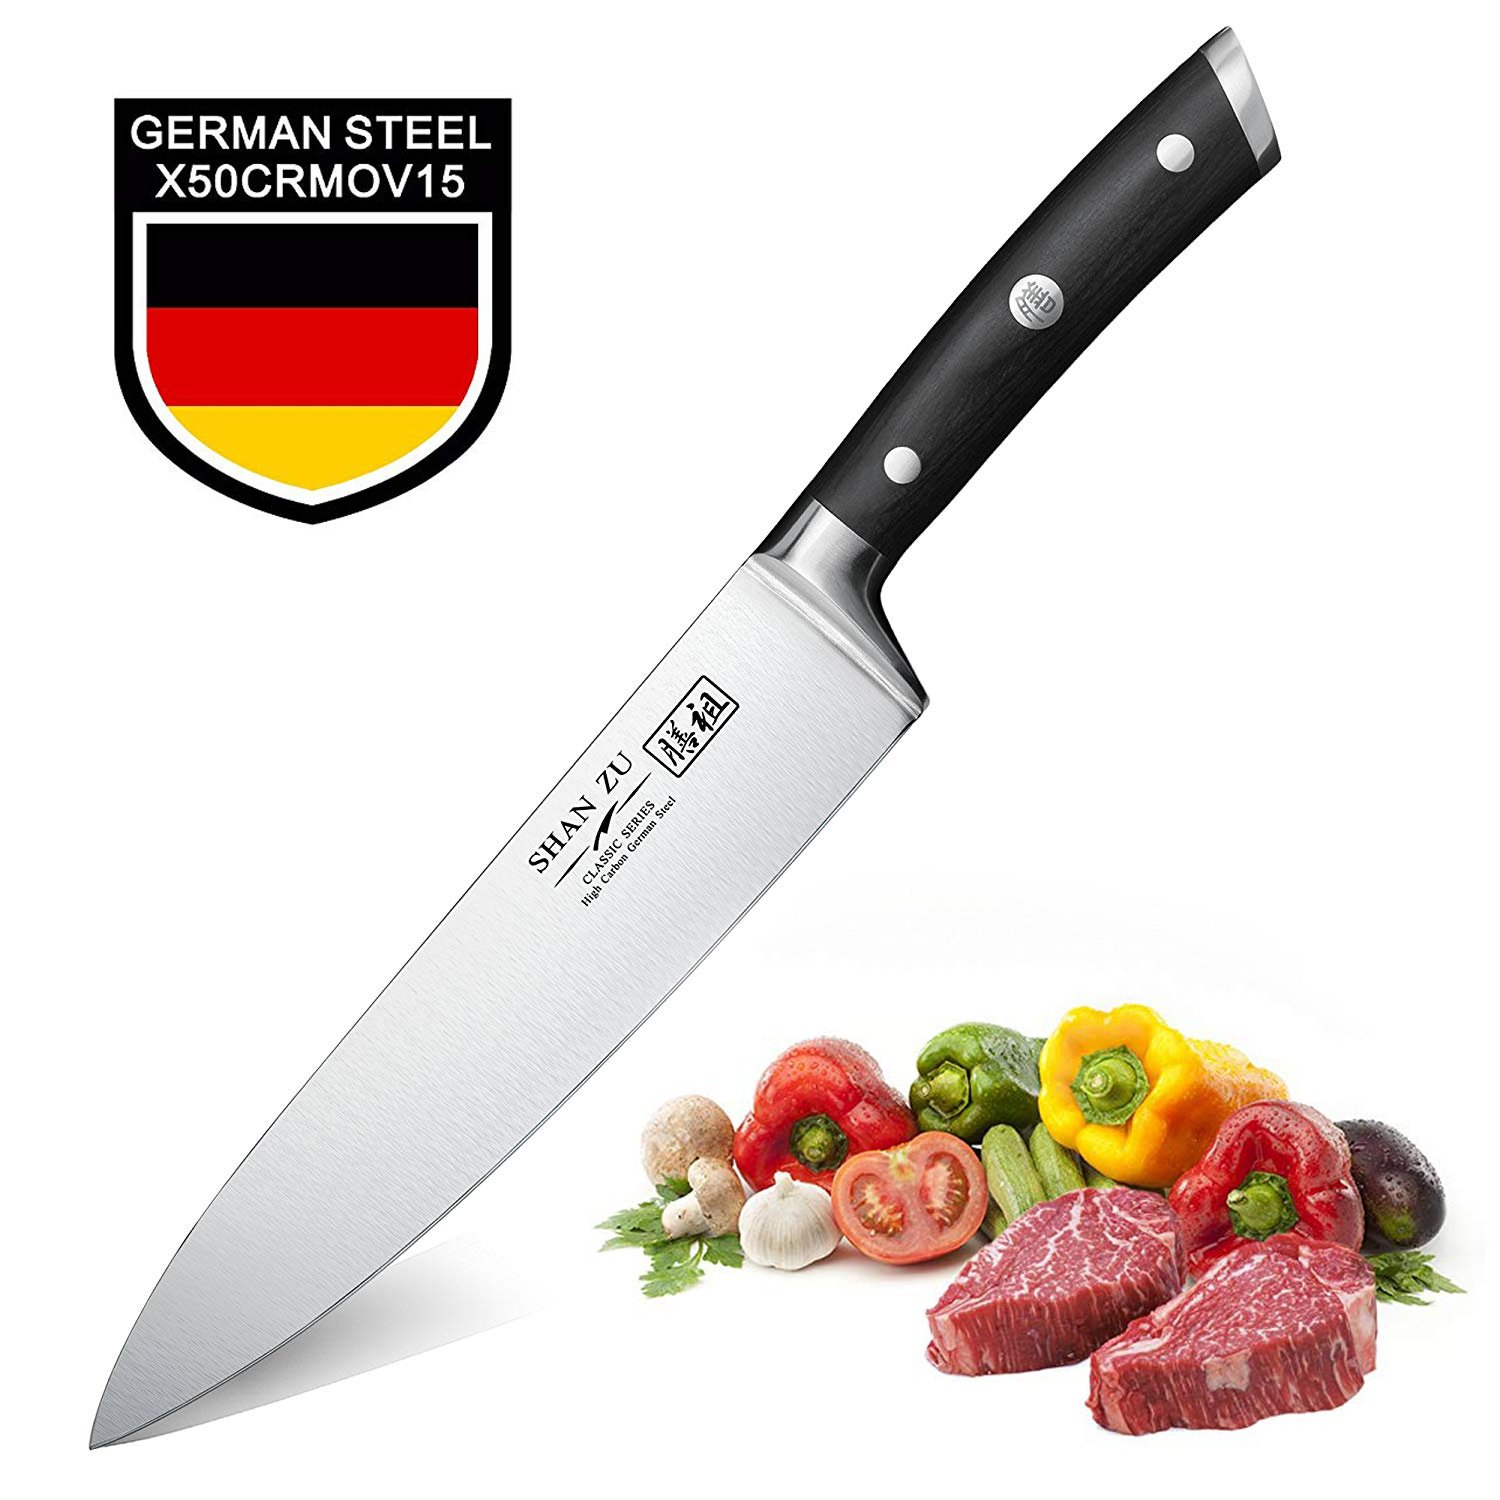 Chef Knife 8 Inch, SHAN ZU Pro Kitchen Knife with High Carbon German Steel with Ergonomic Handle, Rust Free and Wear Resistant, Perfect for Kitchen and Home